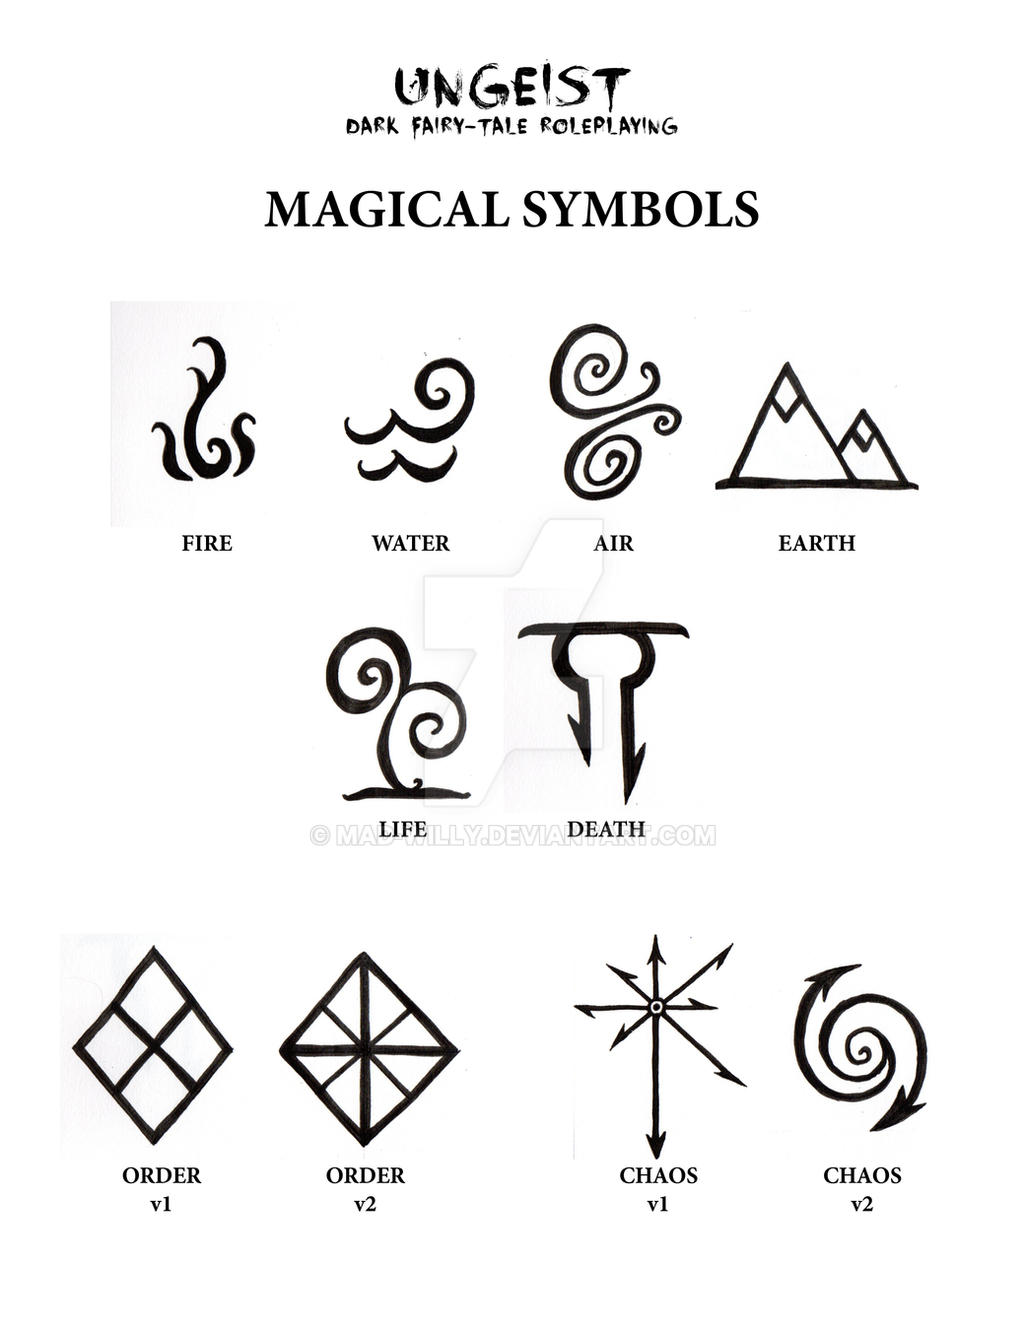 Egyptian Symbols And Their Meanings Gallery Symbols And Meanings Chart